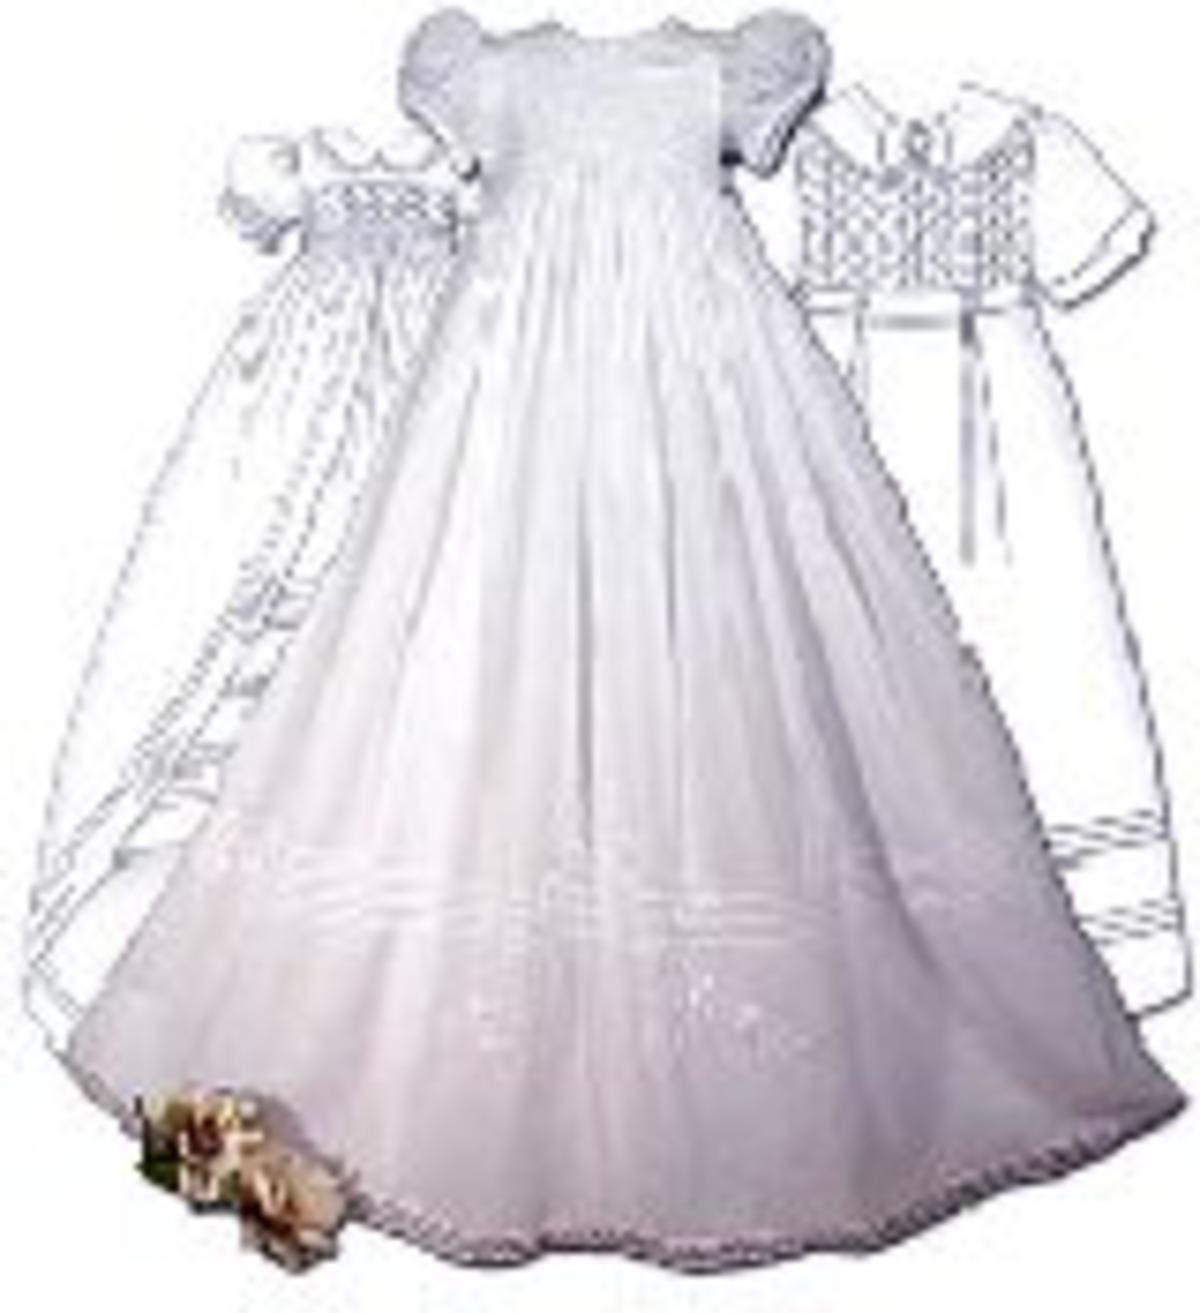 Christening Gowns and Their Fashion Background